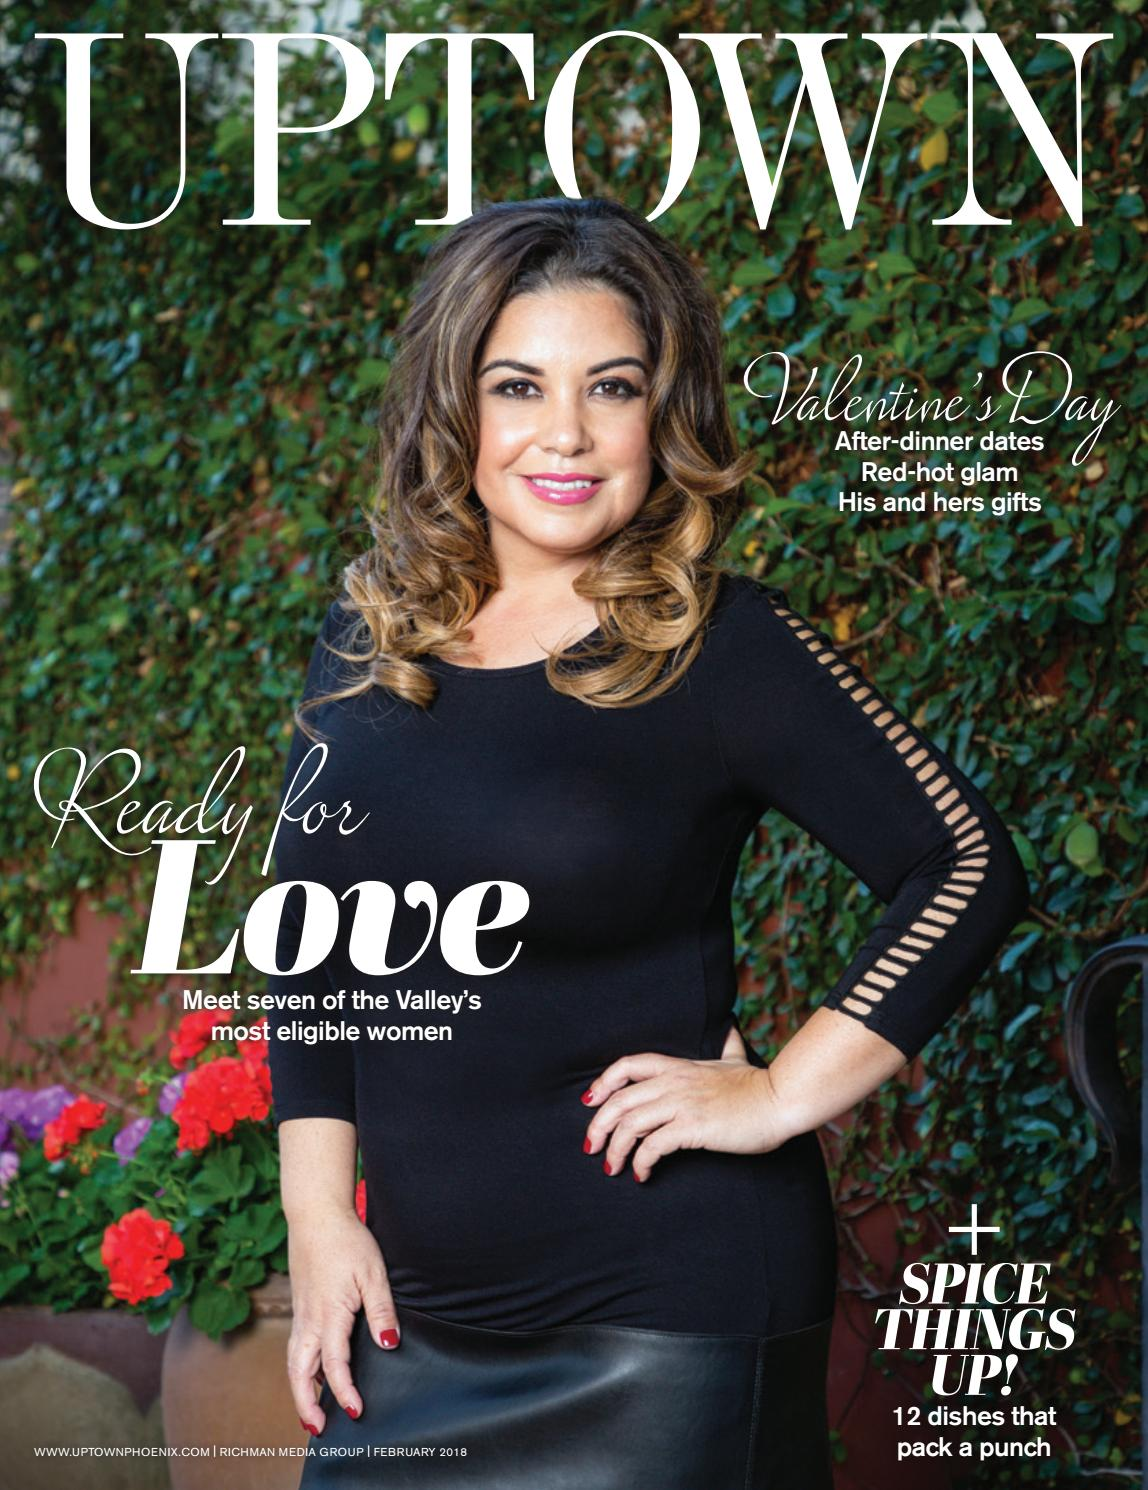 c21c15779d Uptown Magazine February 2018 by Richman Media Group - issuu